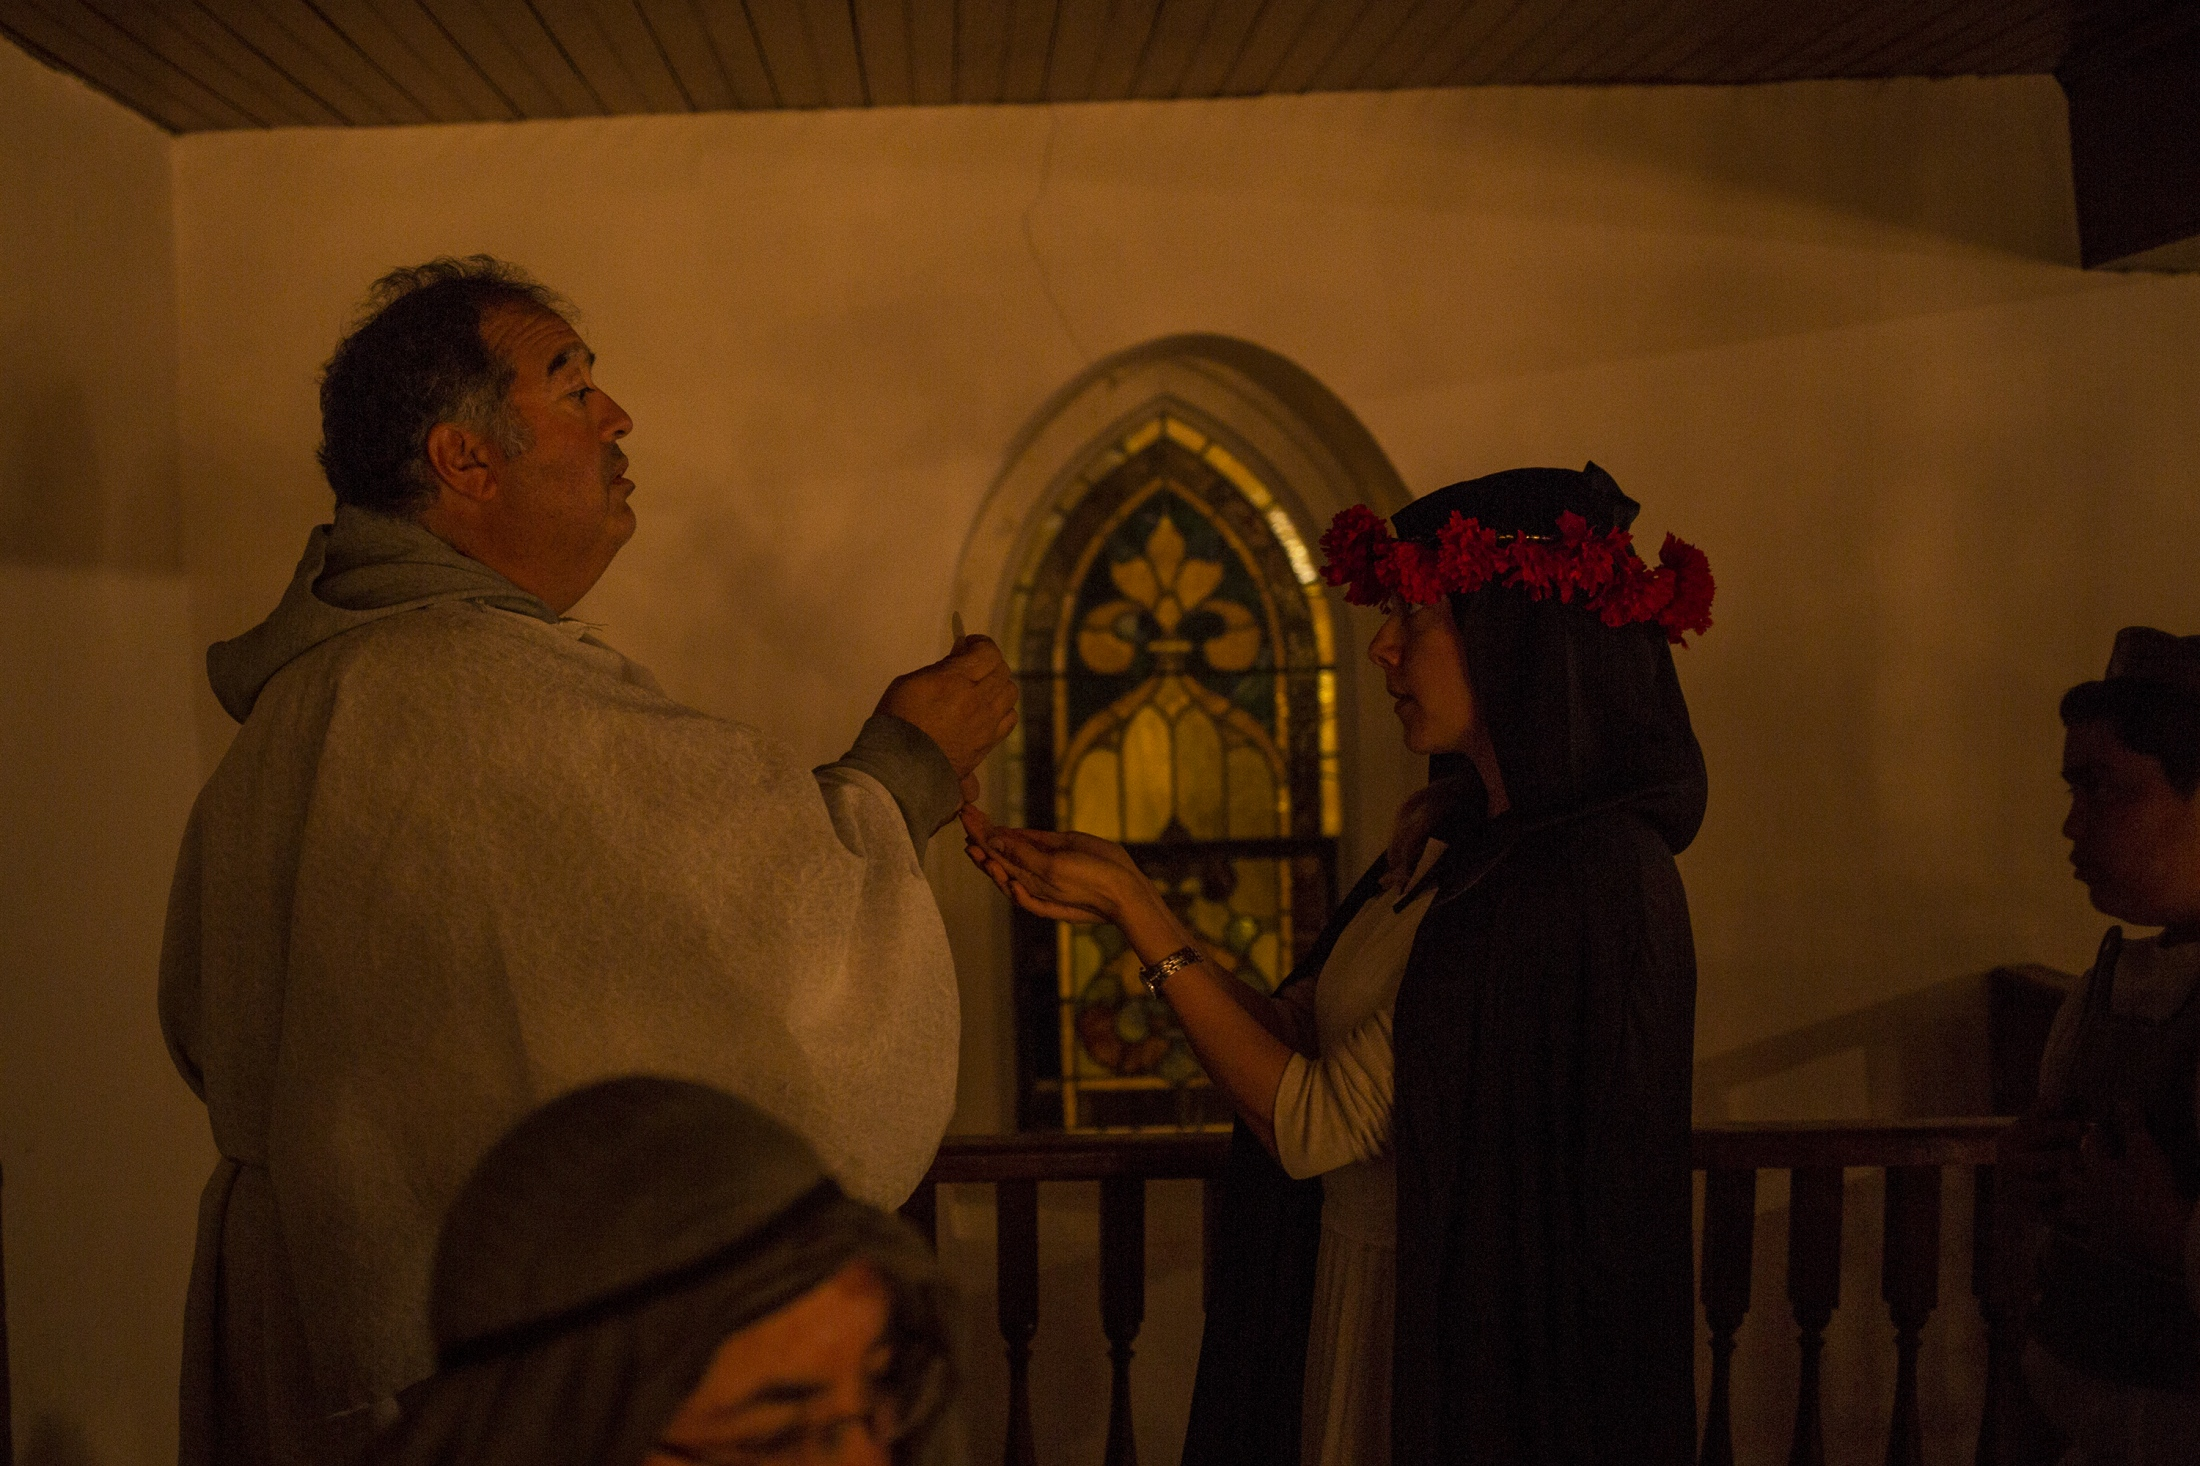 Severiano Sisneros III gives communion to Victoria Flores who is dressed as Saint Rose of Lima during the All Saints Day mass.